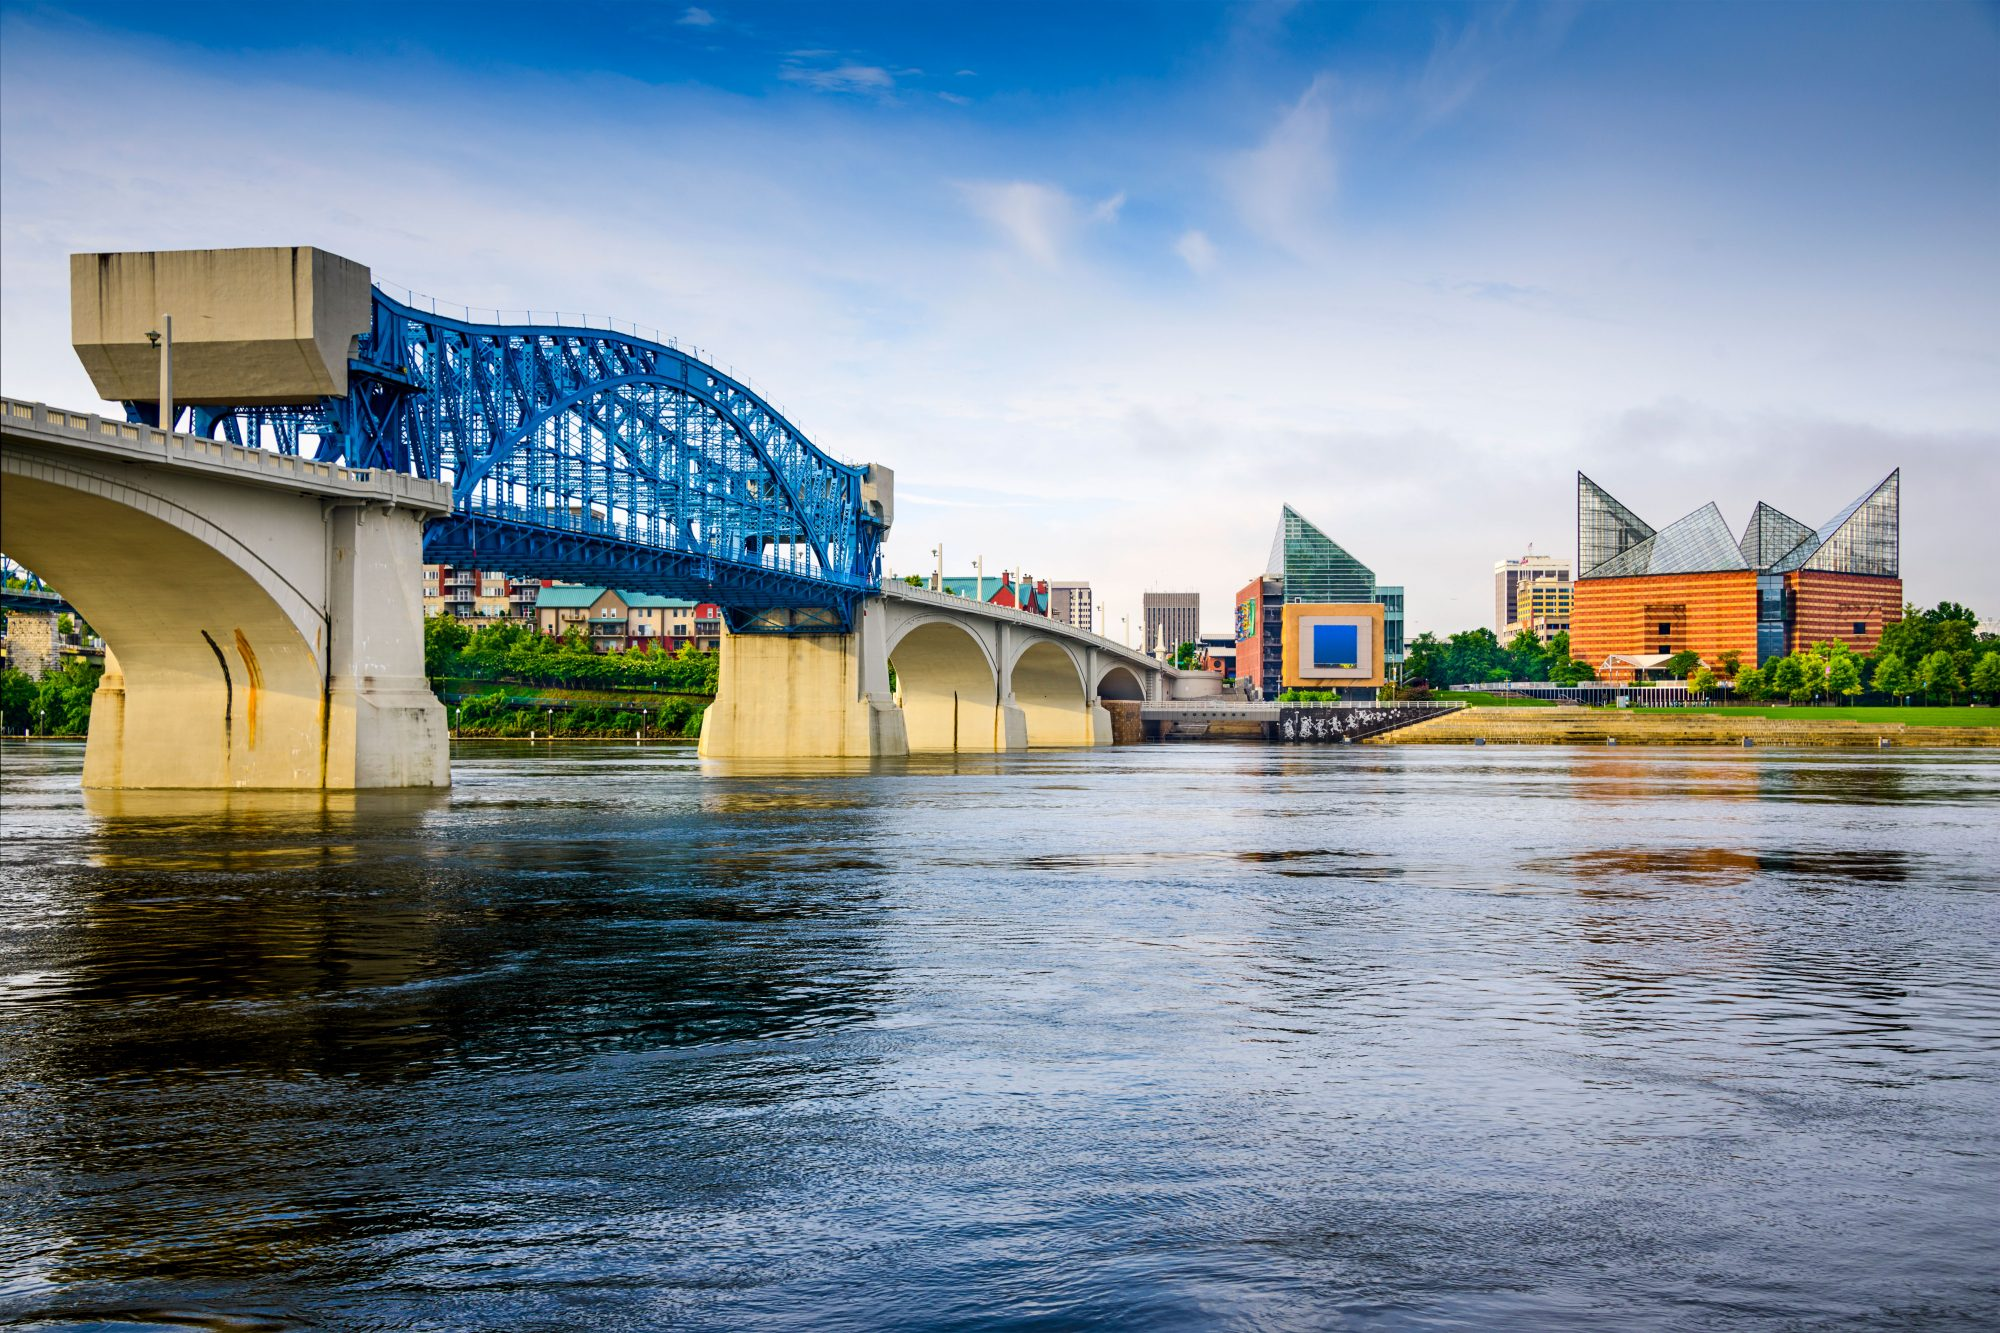 RX_1703_Chattanooga, Tennessee.jpg